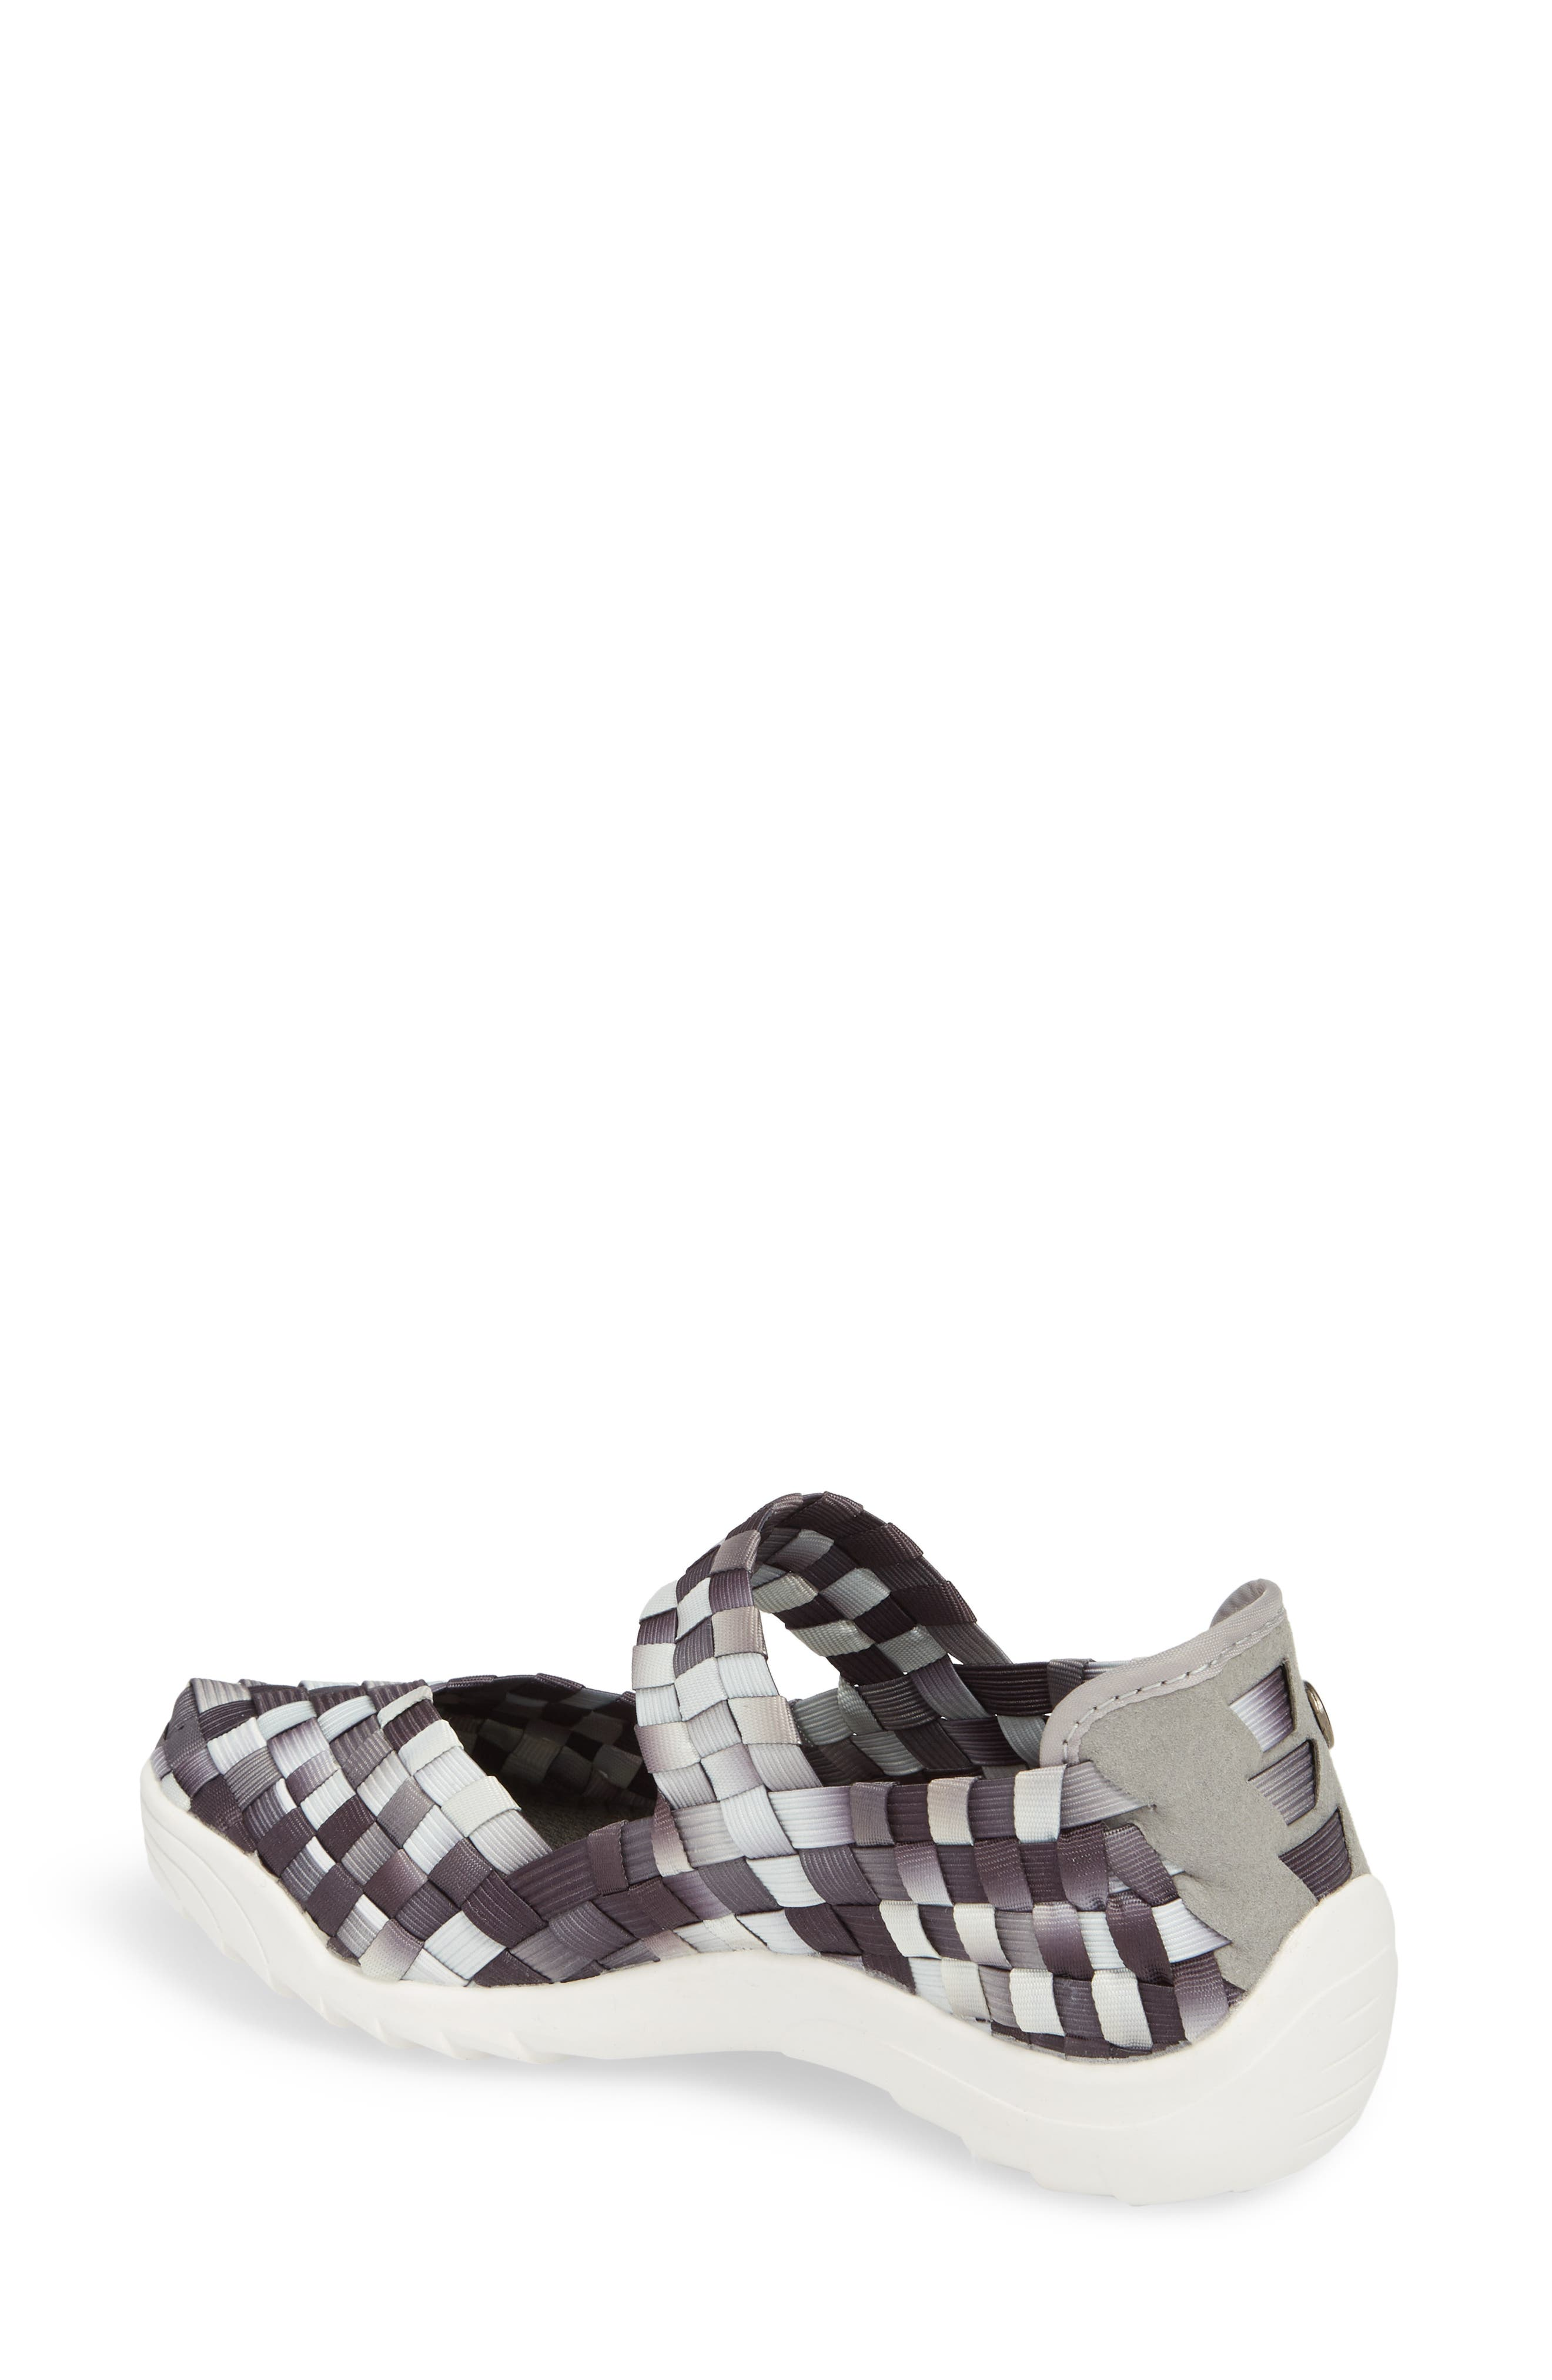 Rigged Charm Sneaker,                             Alternate thumbnail 2, color,                             GREY OMBRE